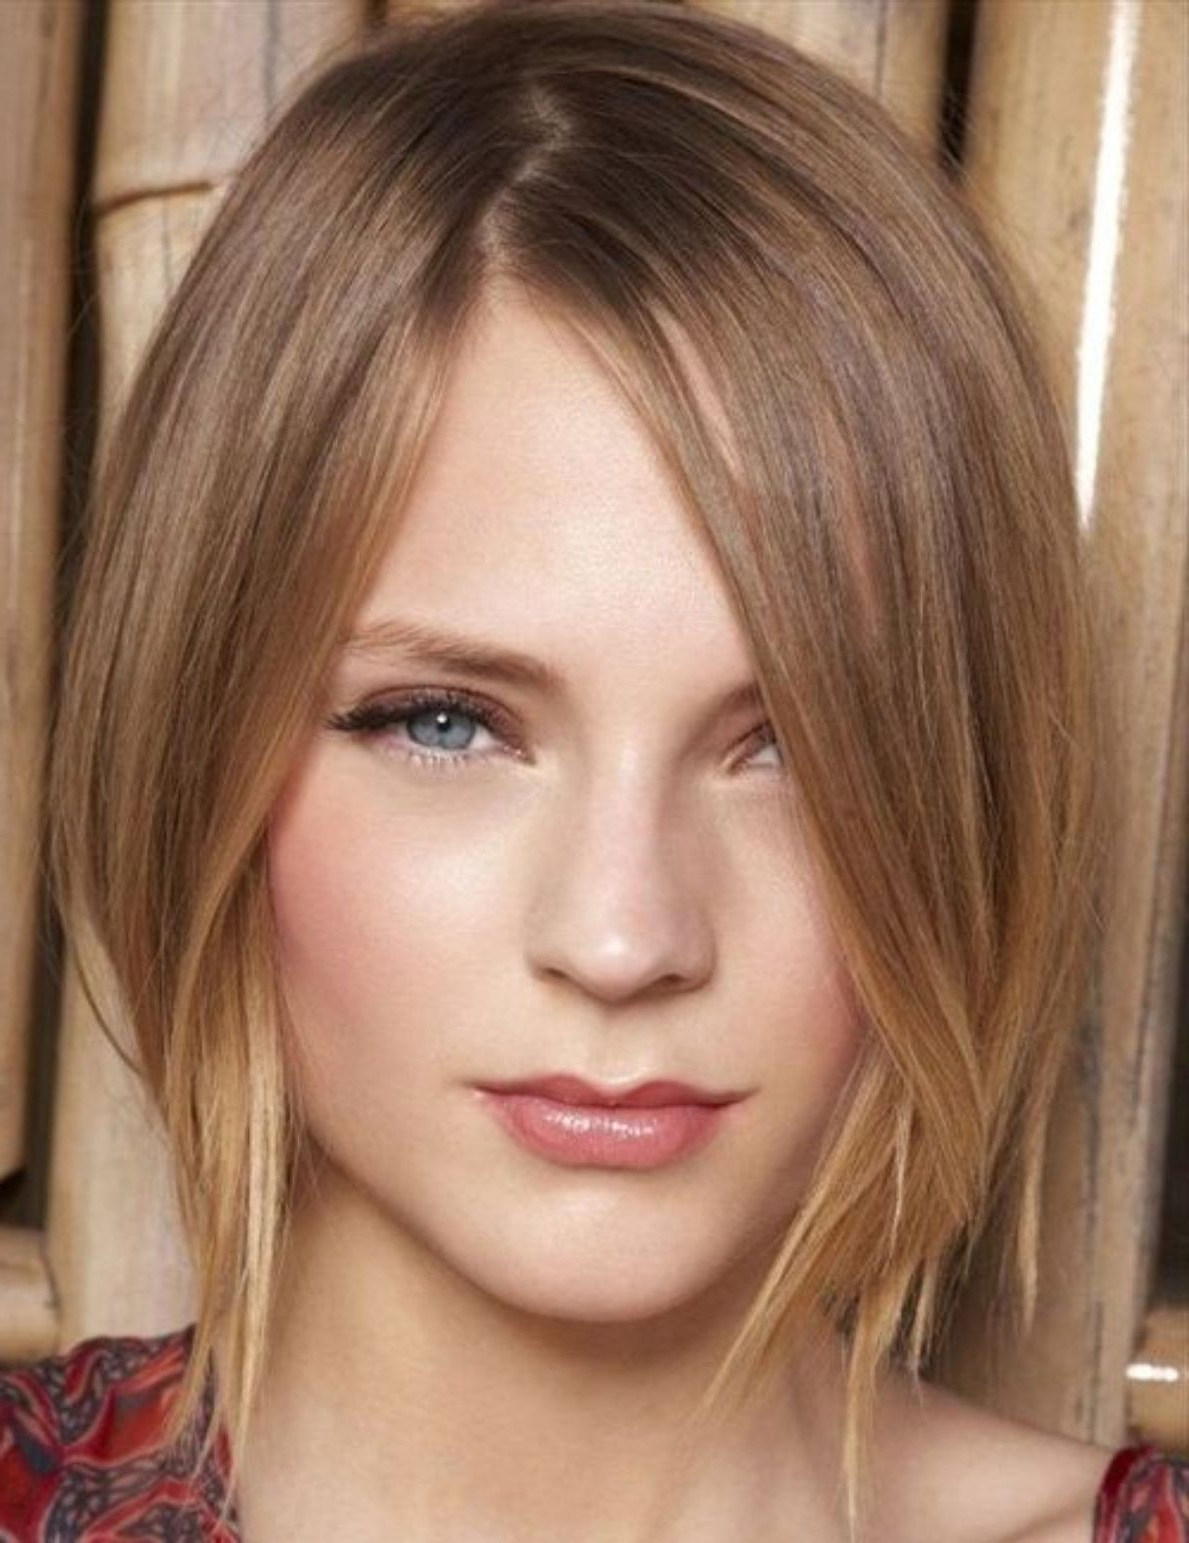 70 Devastatingly Cool Haircuts For Thin Hair | Hair | Pinterest Intended For Sleek Bob Hairstyles For Thin Hair (View 16 of 20)